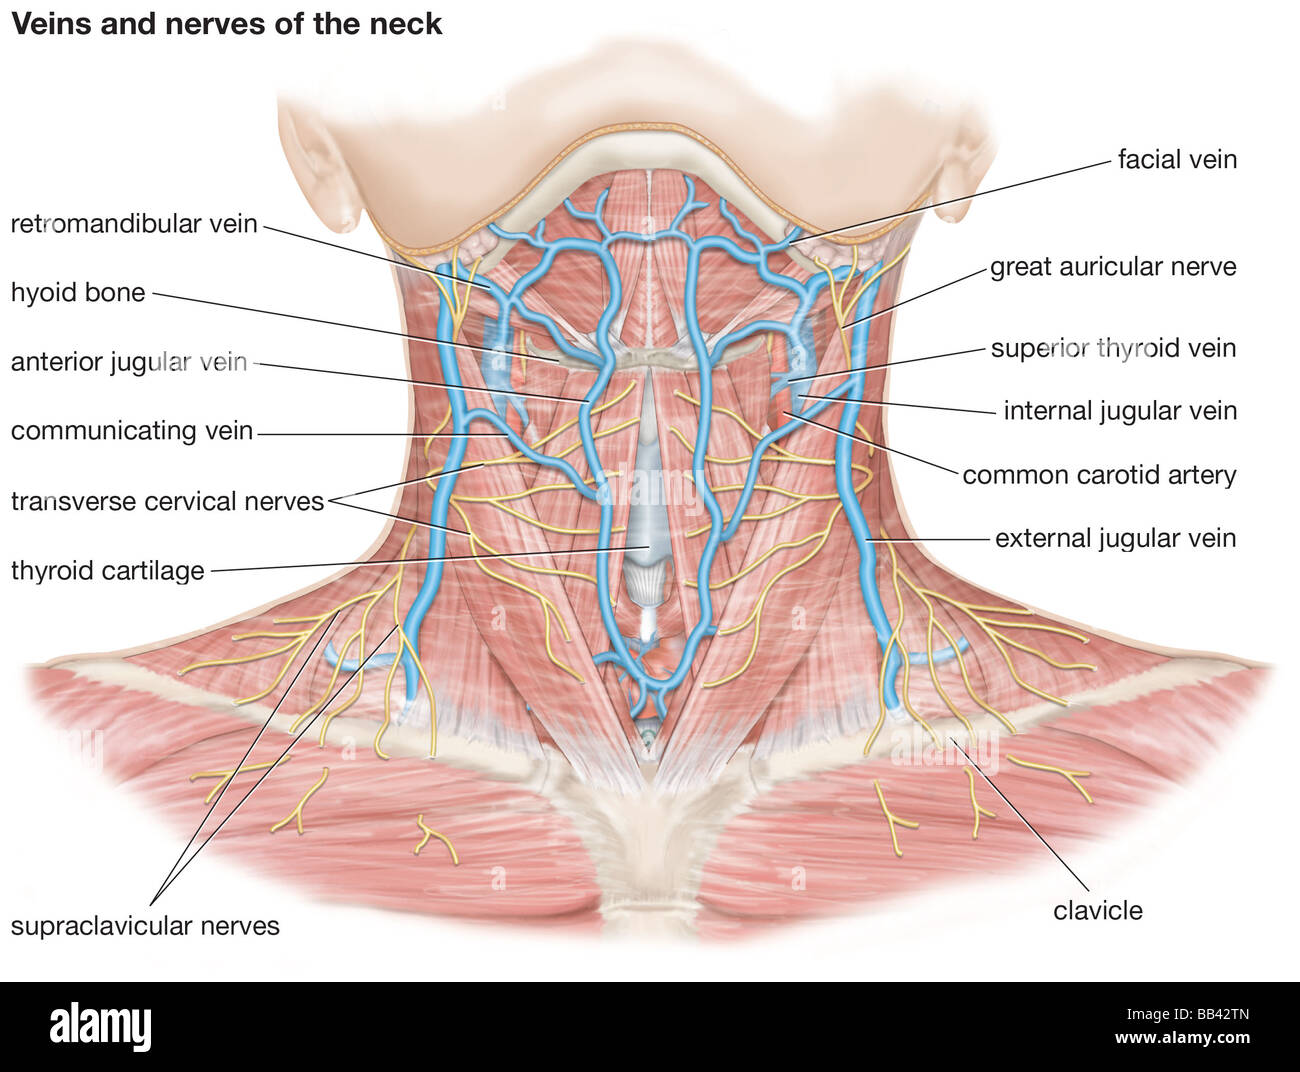 Veins And Nerves Of The Neck Stock Photo, Royalty Free Image ...